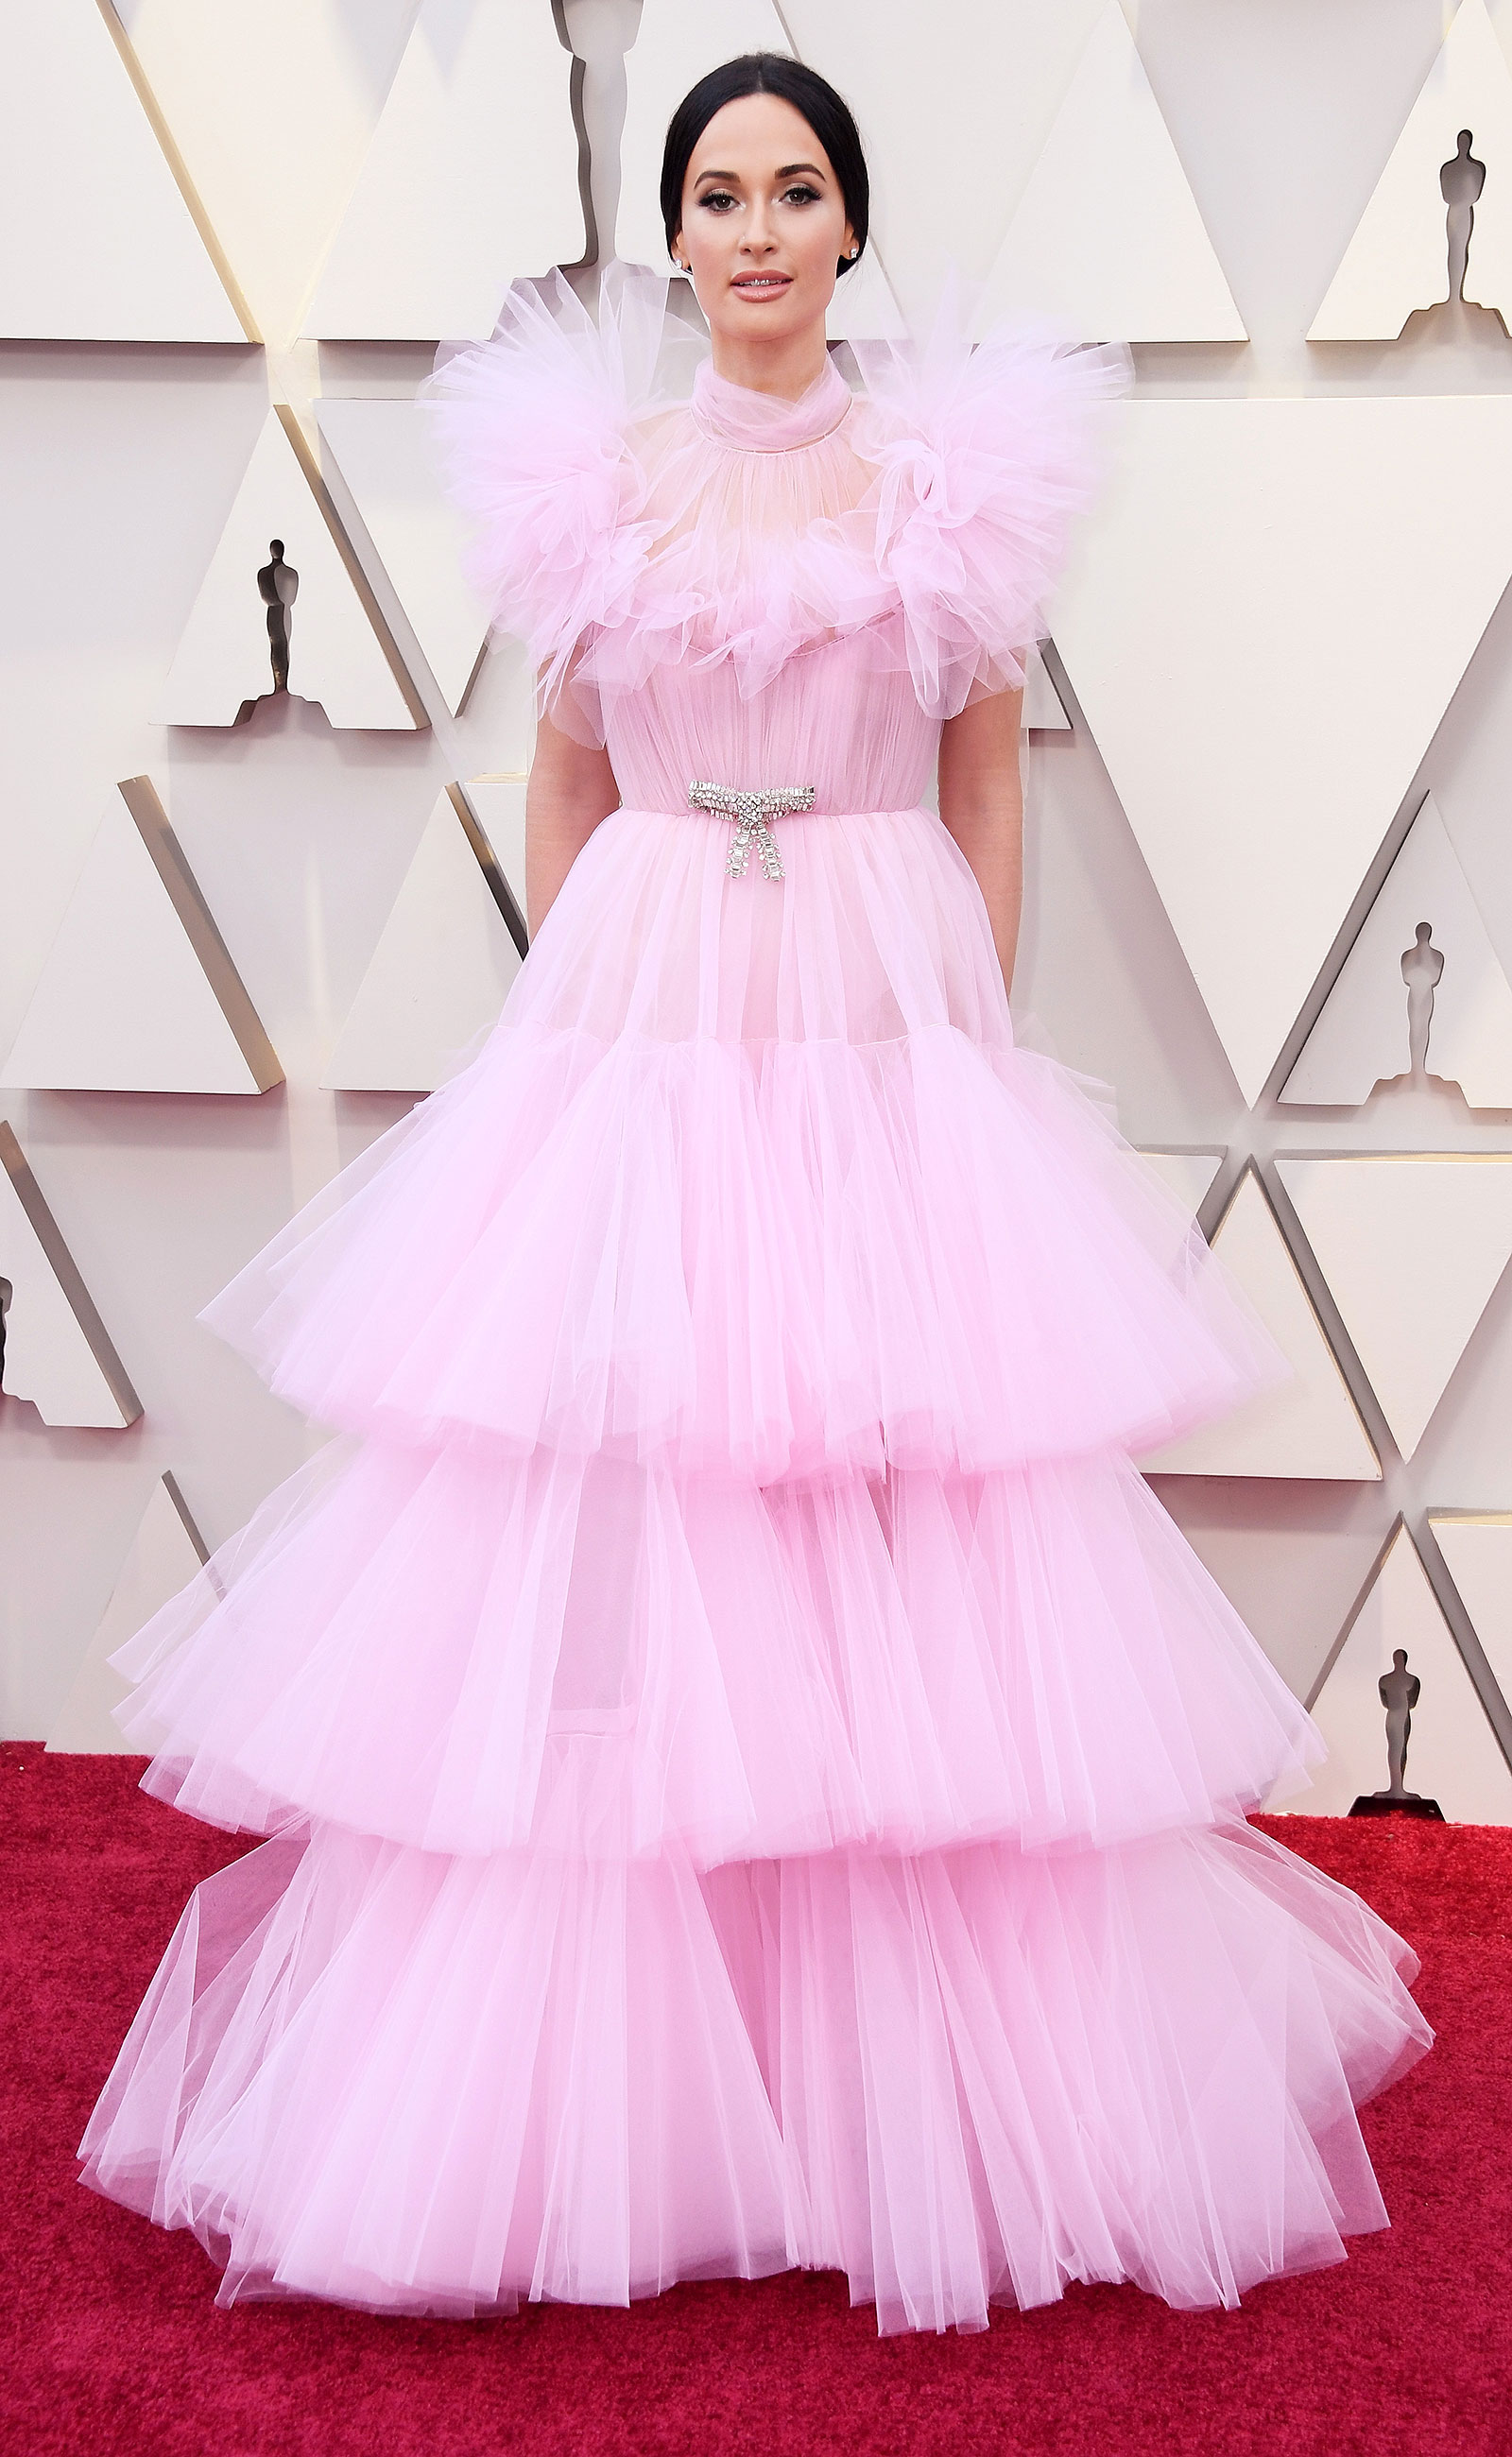 People: Kacey Musgraves at the 2019 Oscars • February 24, 2019